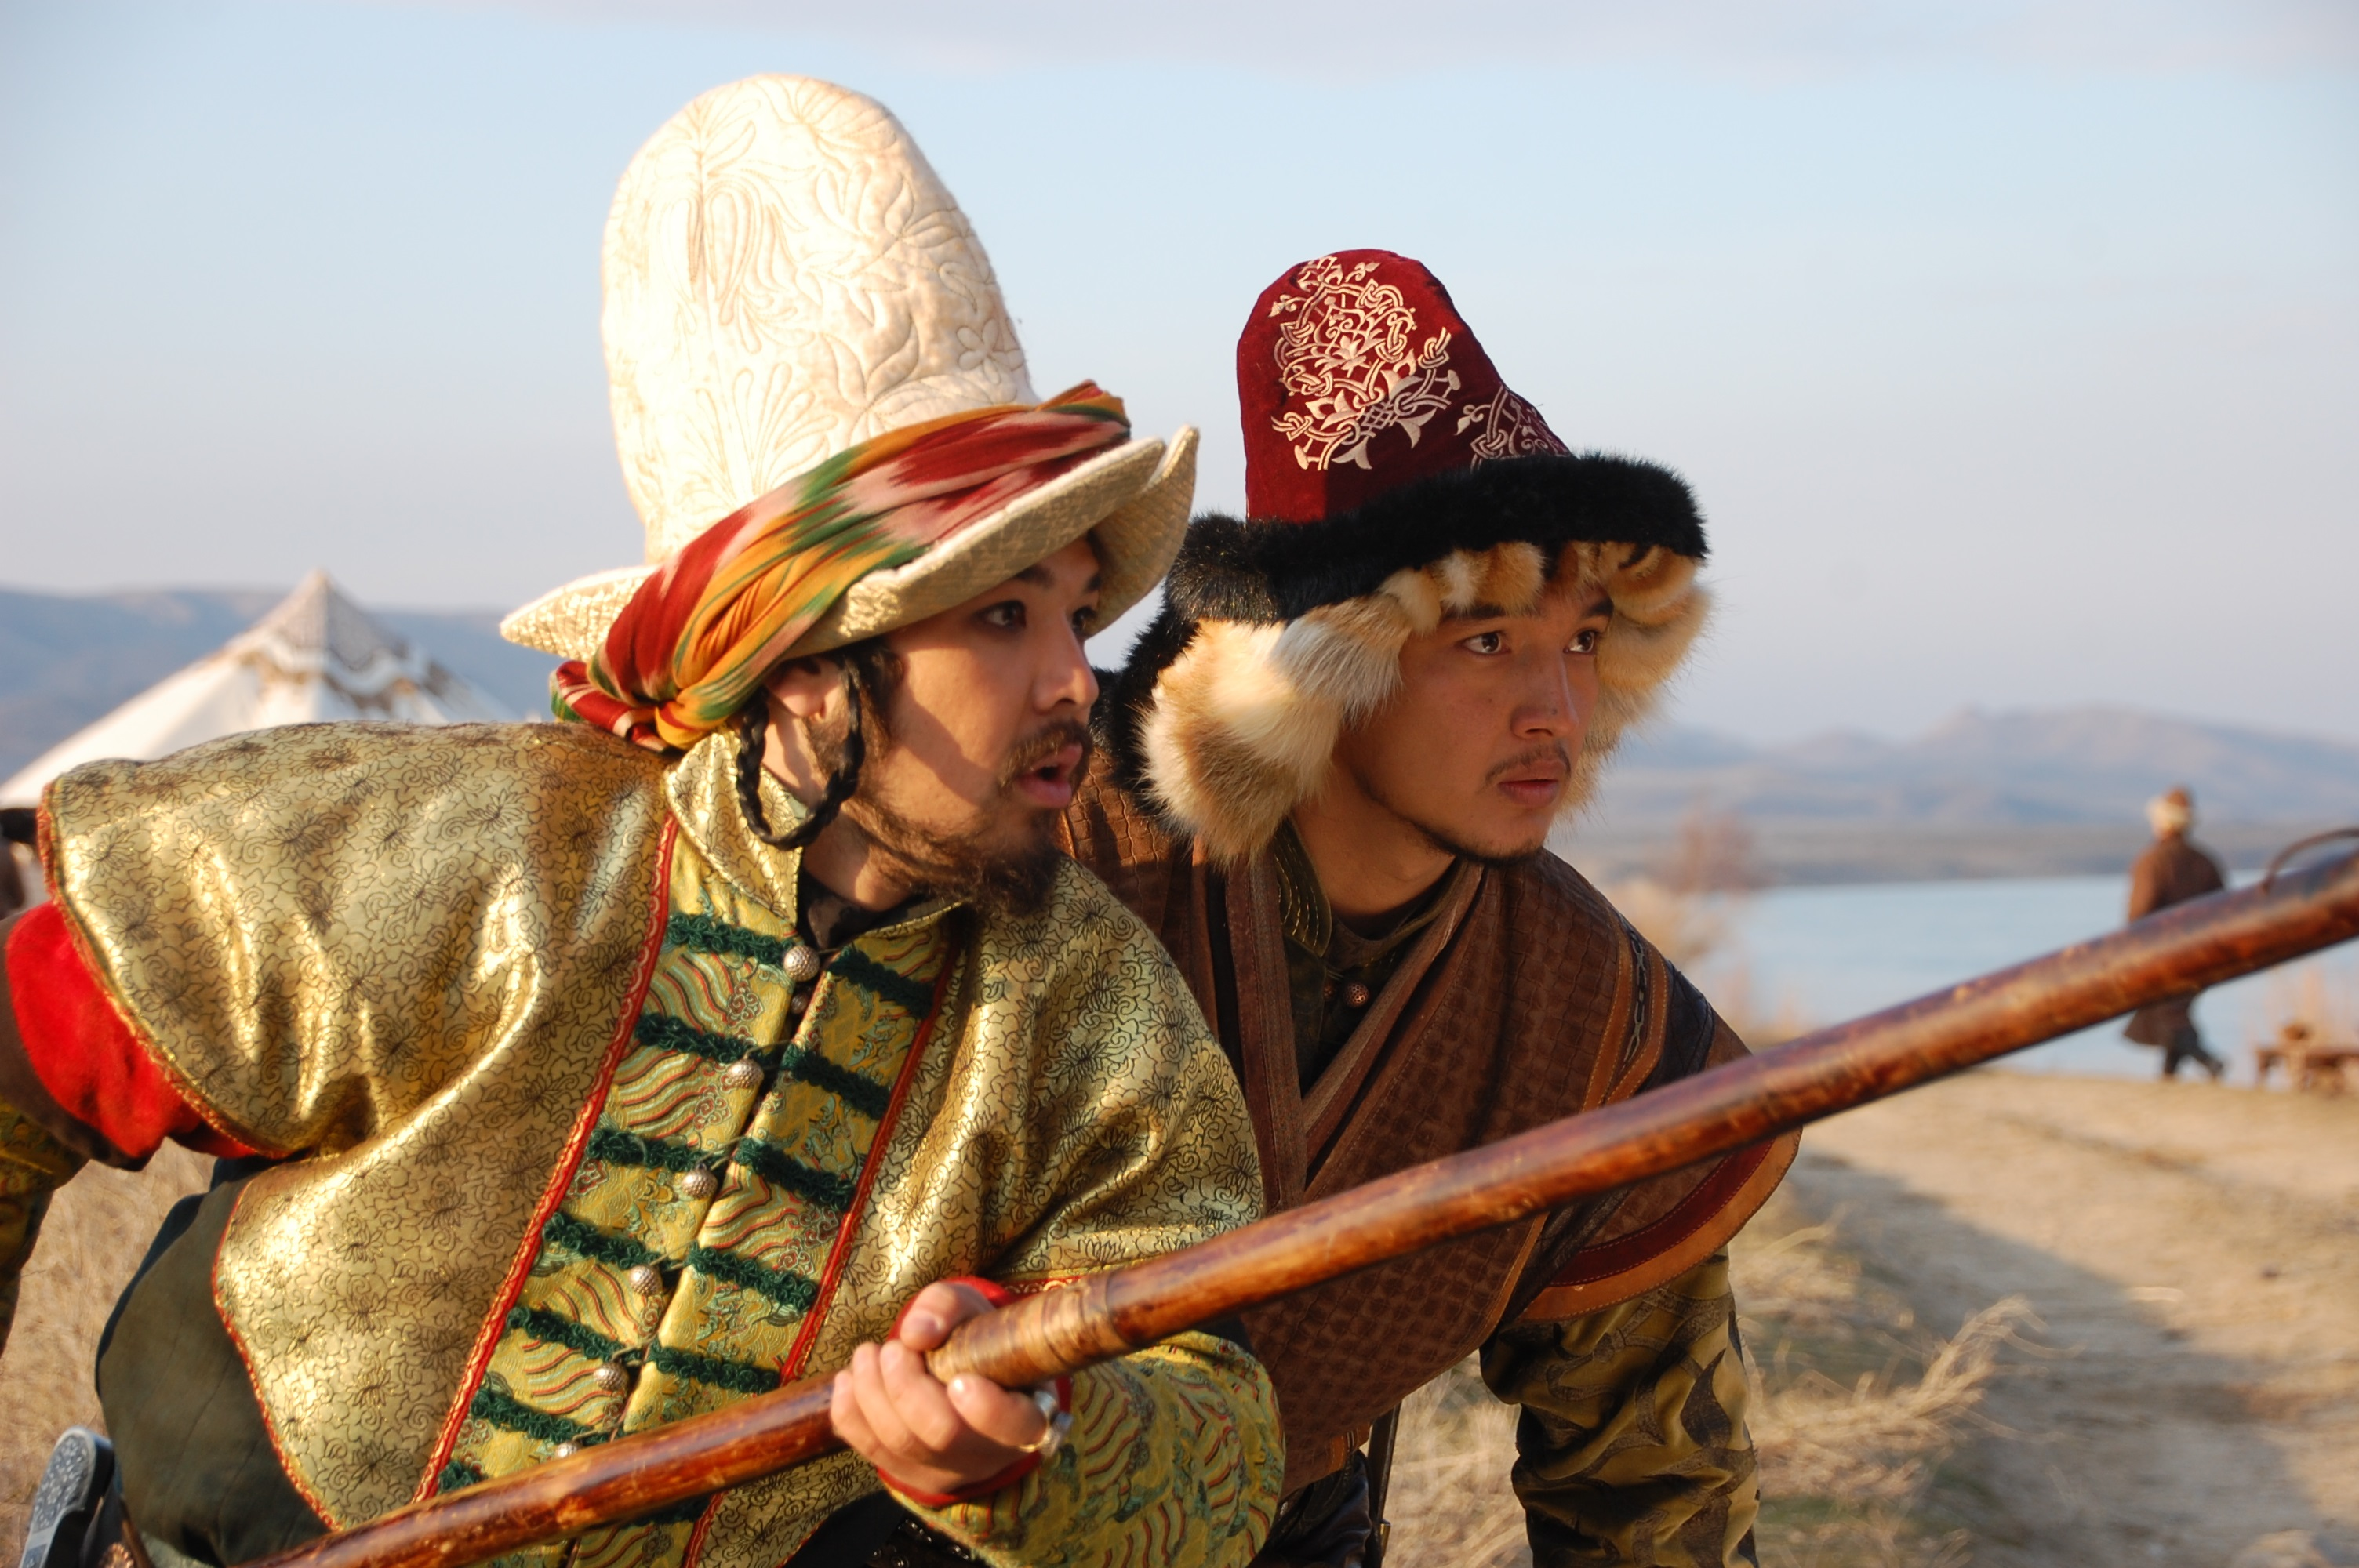 The Kazakh Khanate Second Season to Be Released